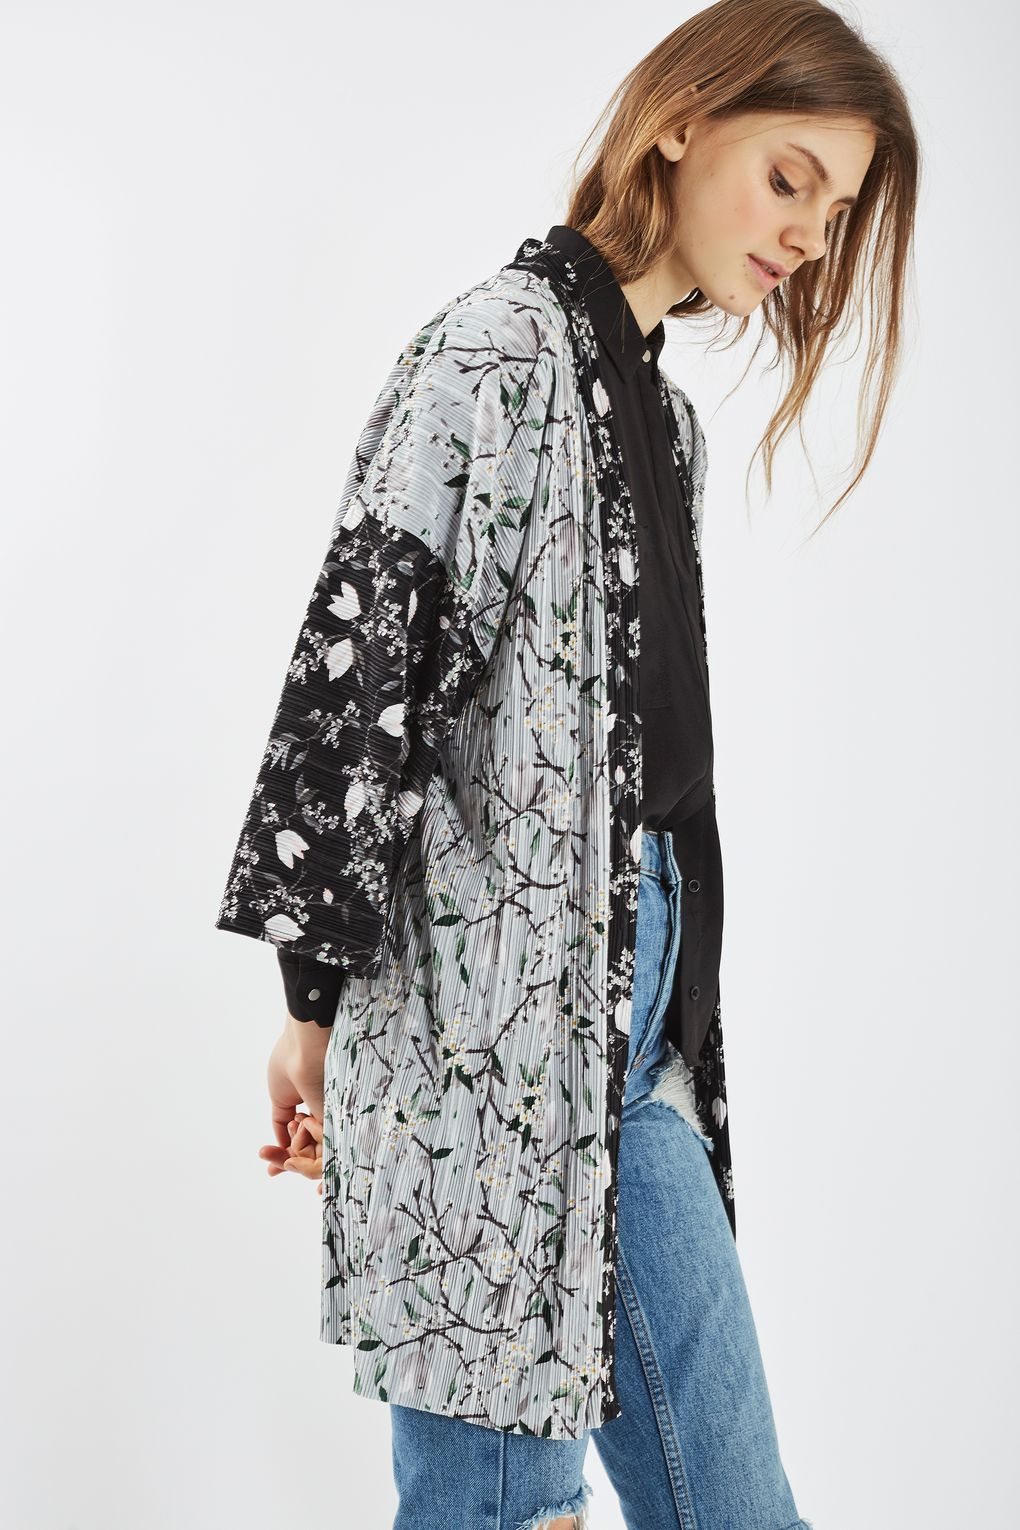 Plisse Print Longline Kimono - New In Fashion - New In | Kimonos ...